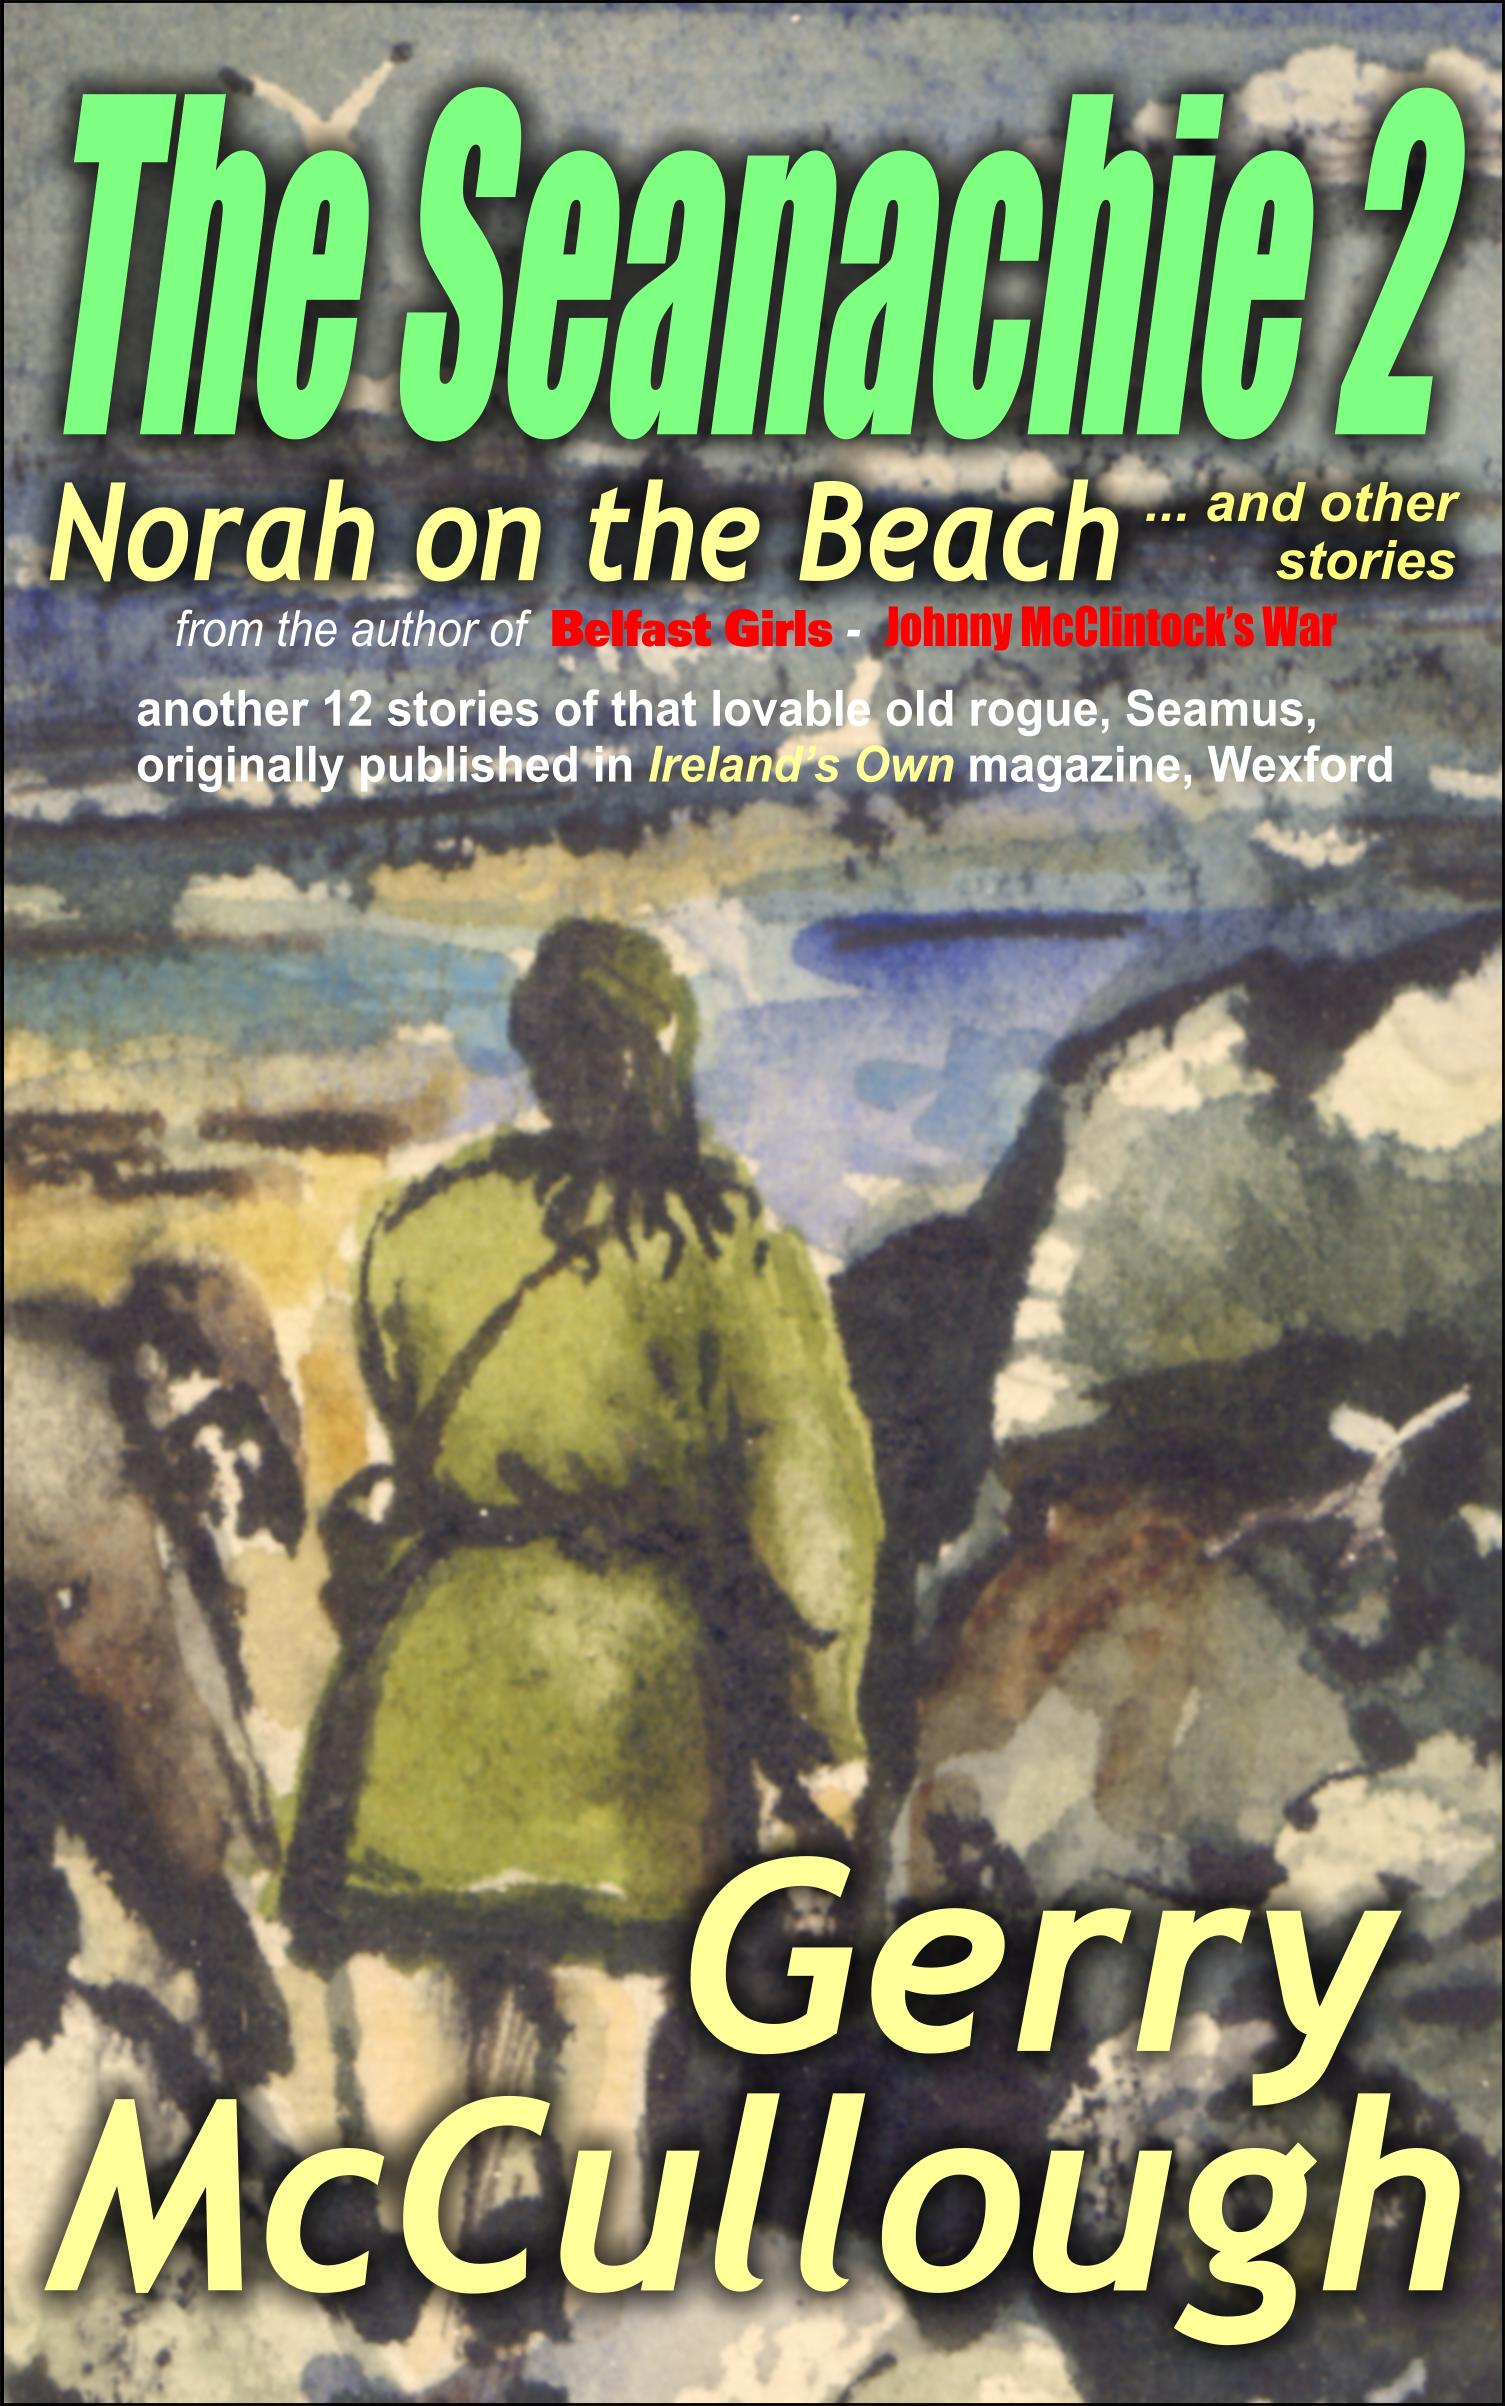 Buy 'The Seanachie 2: Norah on the Beach and other stories' from Amazon & other outlets